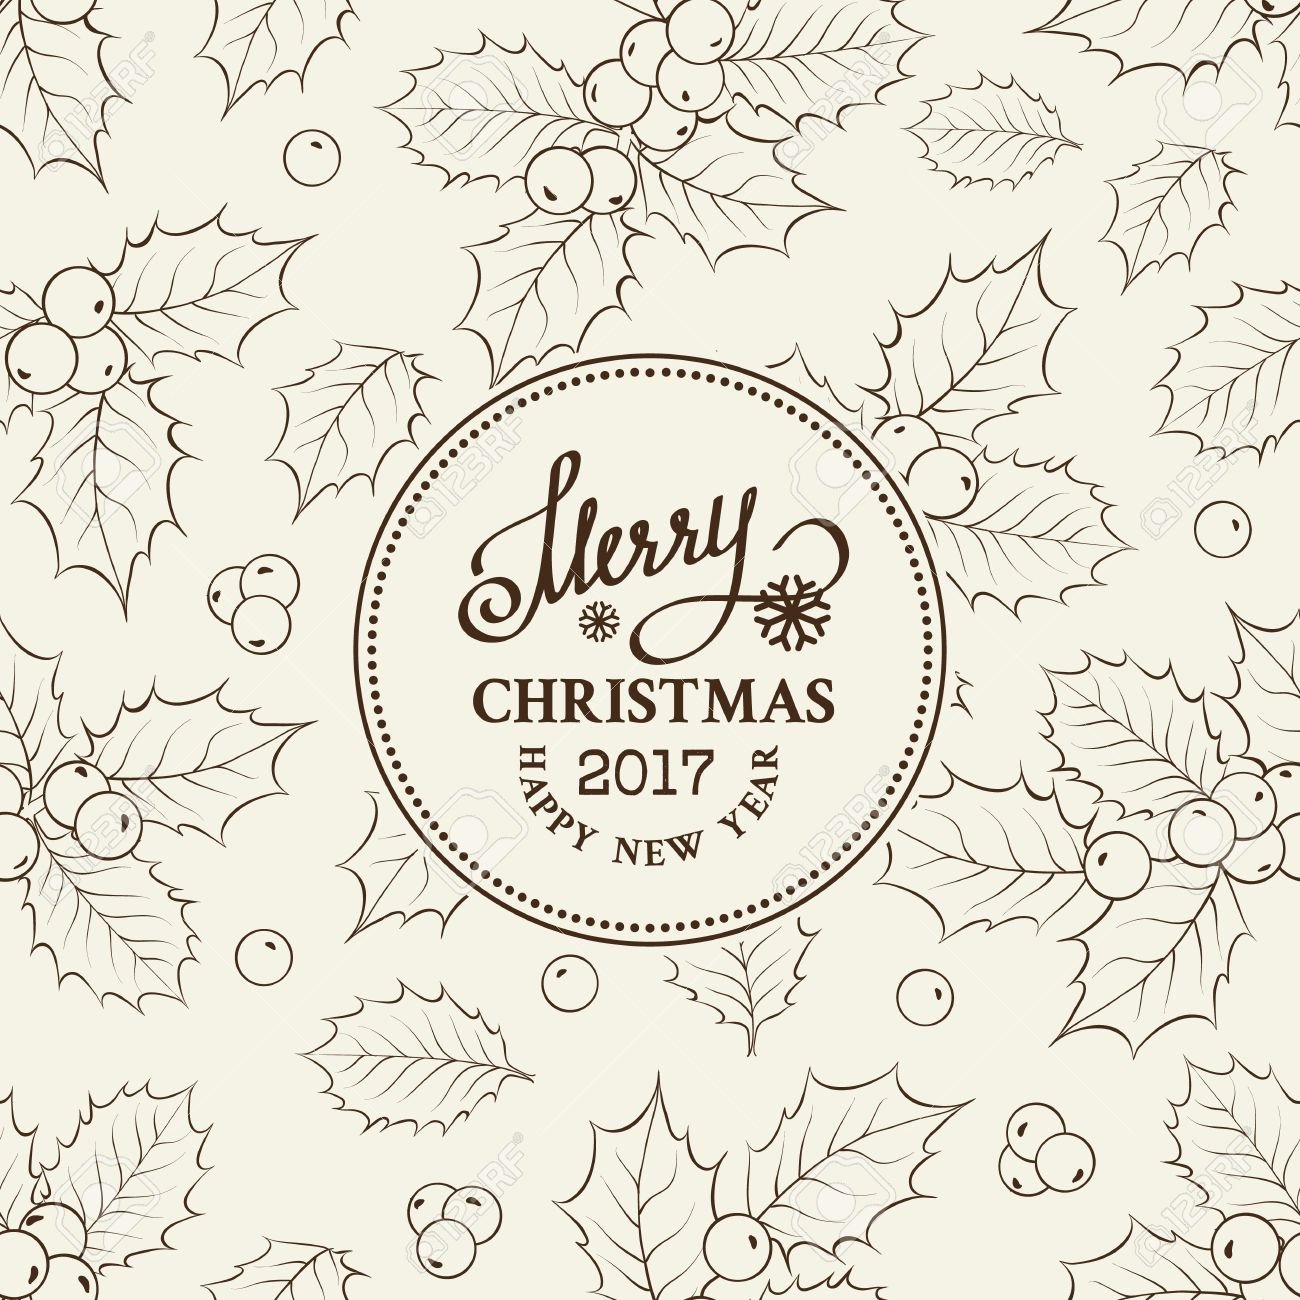 1300x1300 Christmas Mistletoe Line Drawing Over Circle Frame With Holiday